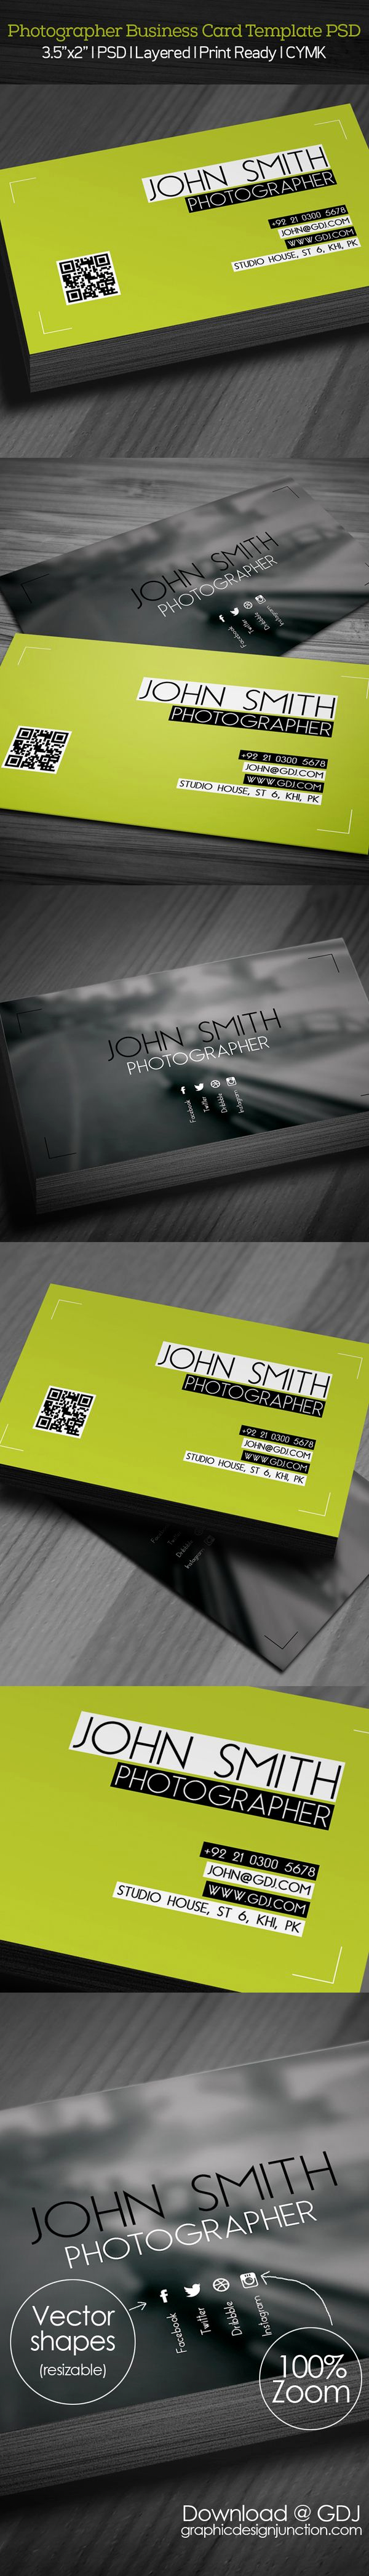 Photography Business Card Templates Unique 25 Best Ideas About Grapher Business Cards On